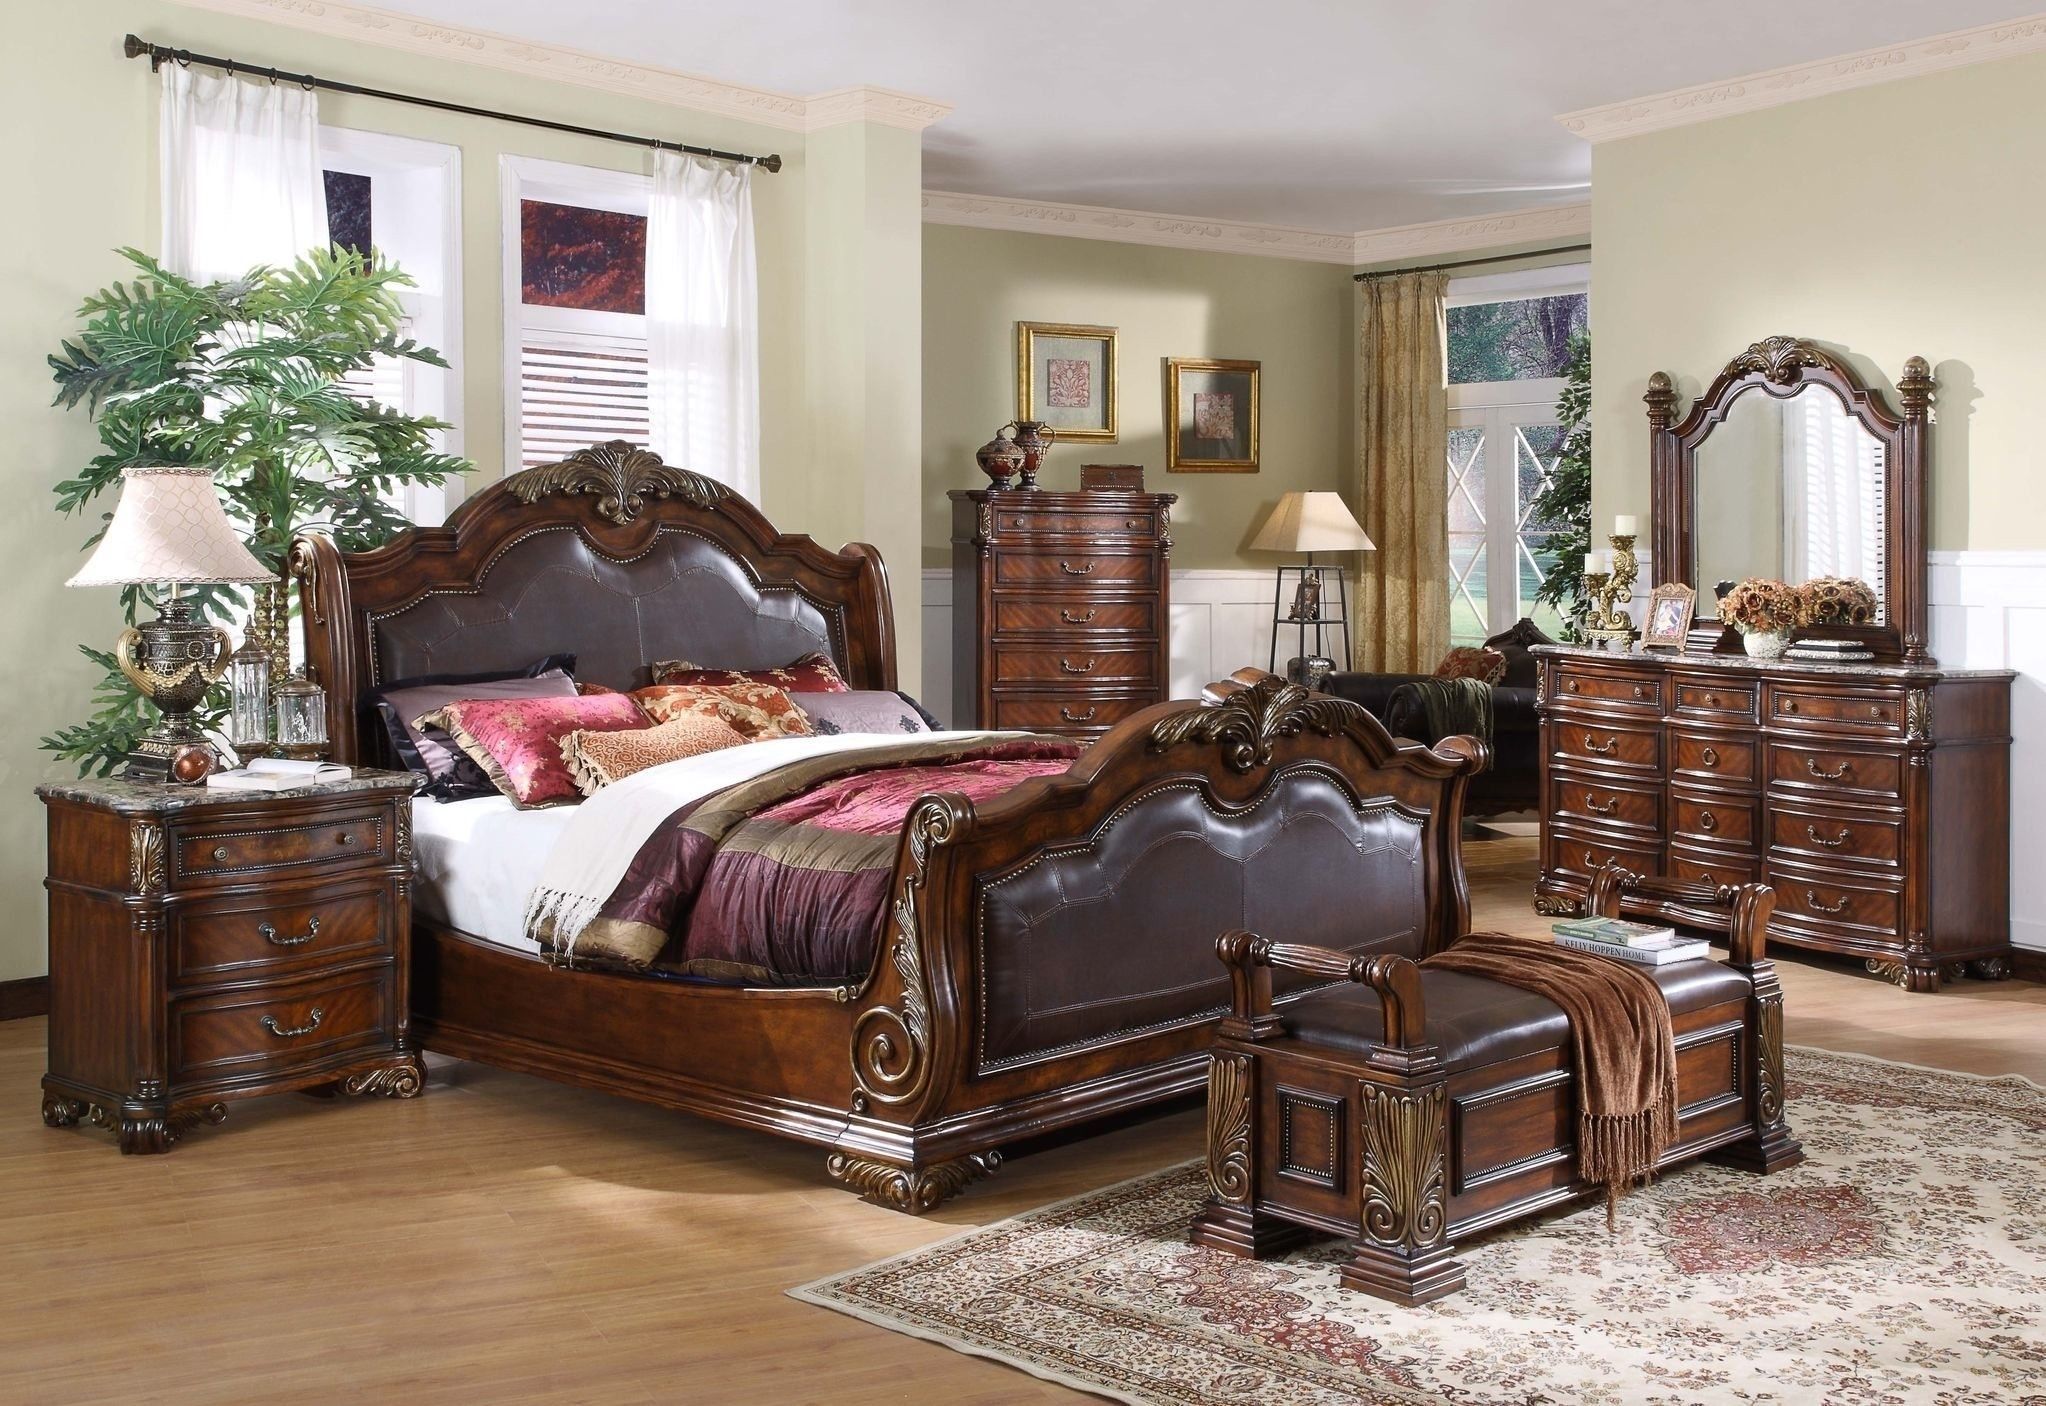 6 Inspired Photo of Wayfair Furniture Bedrooms . Wayfair